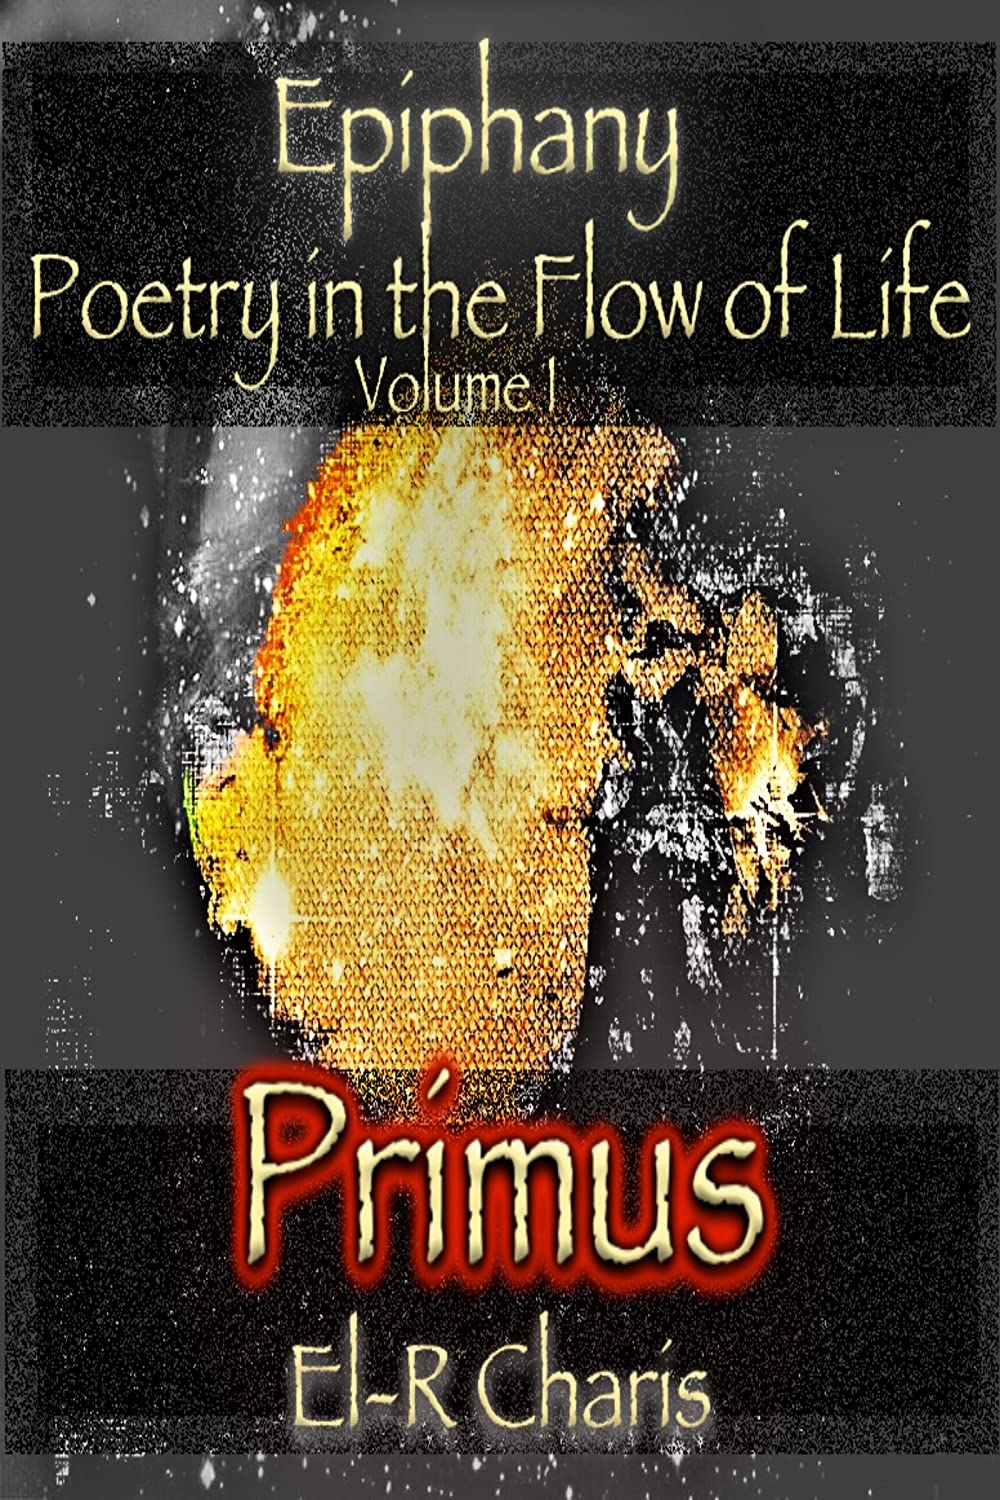 Epiphany, Poetry in the Flow of Life: Volume I: Primus